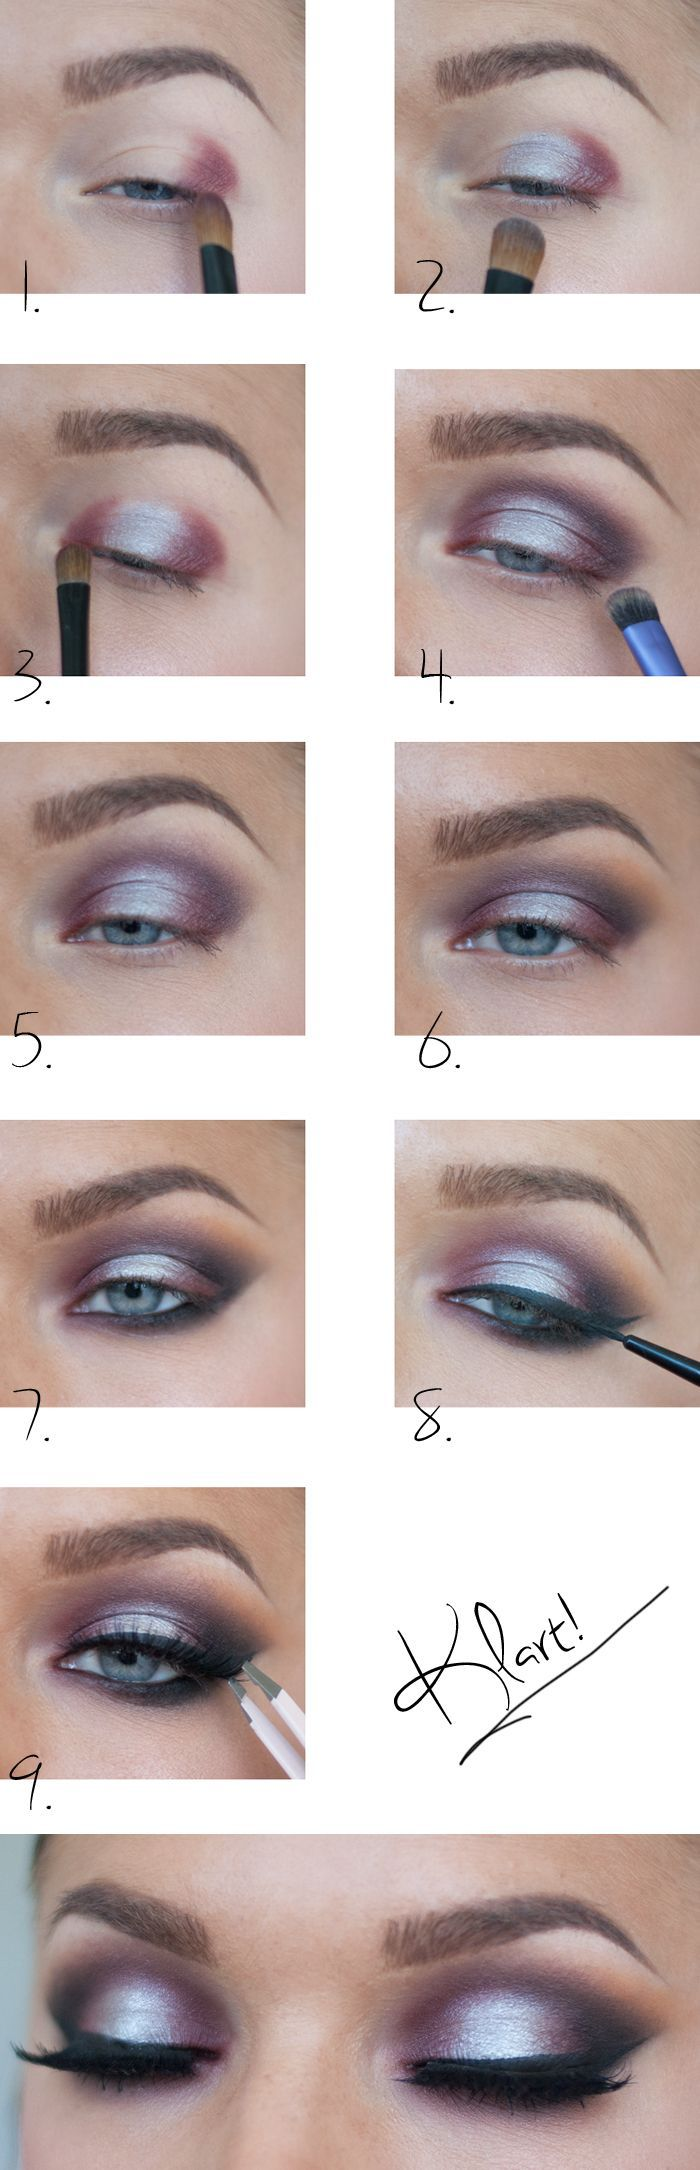 Gorgeous eye makeup. Try this with Mary Kay Mineral Eyeshadow in Sweet Plum, Silver Satin and Iris. For liner, try the Mary Kay Gel Eyeliner with Expandable Brush! Www.marykay.com/Heather.Shields